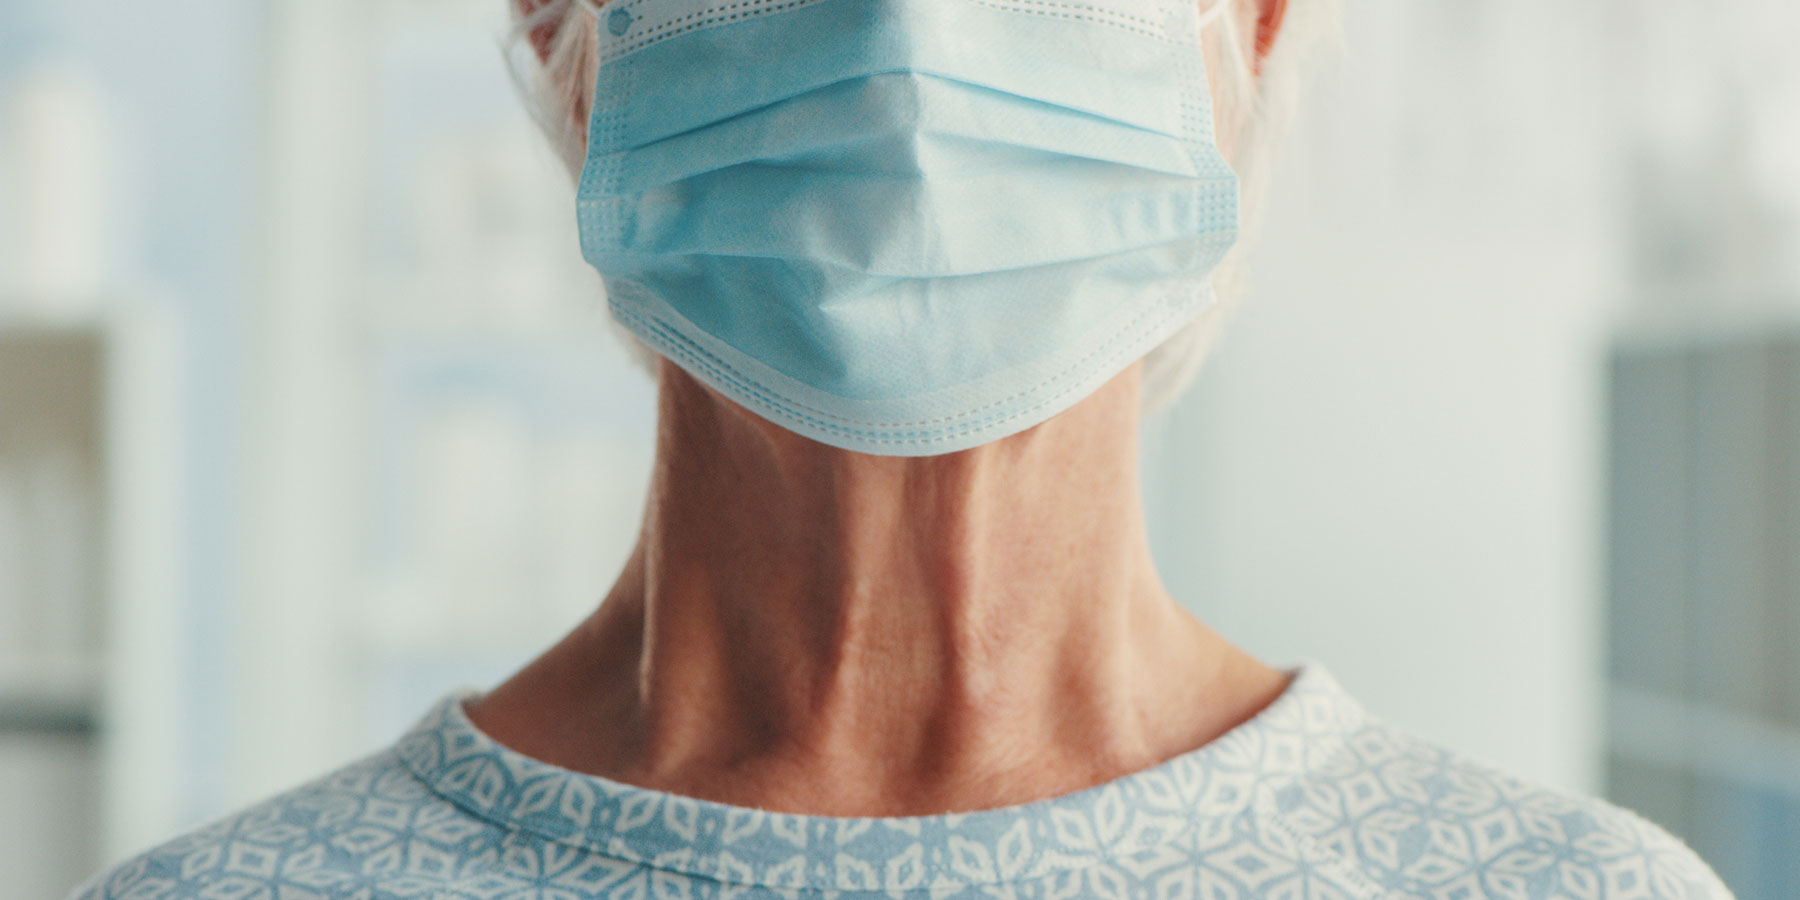 Trial of Therapeutics for Severely Ill Hospitalized COVID-19 Patients Begins